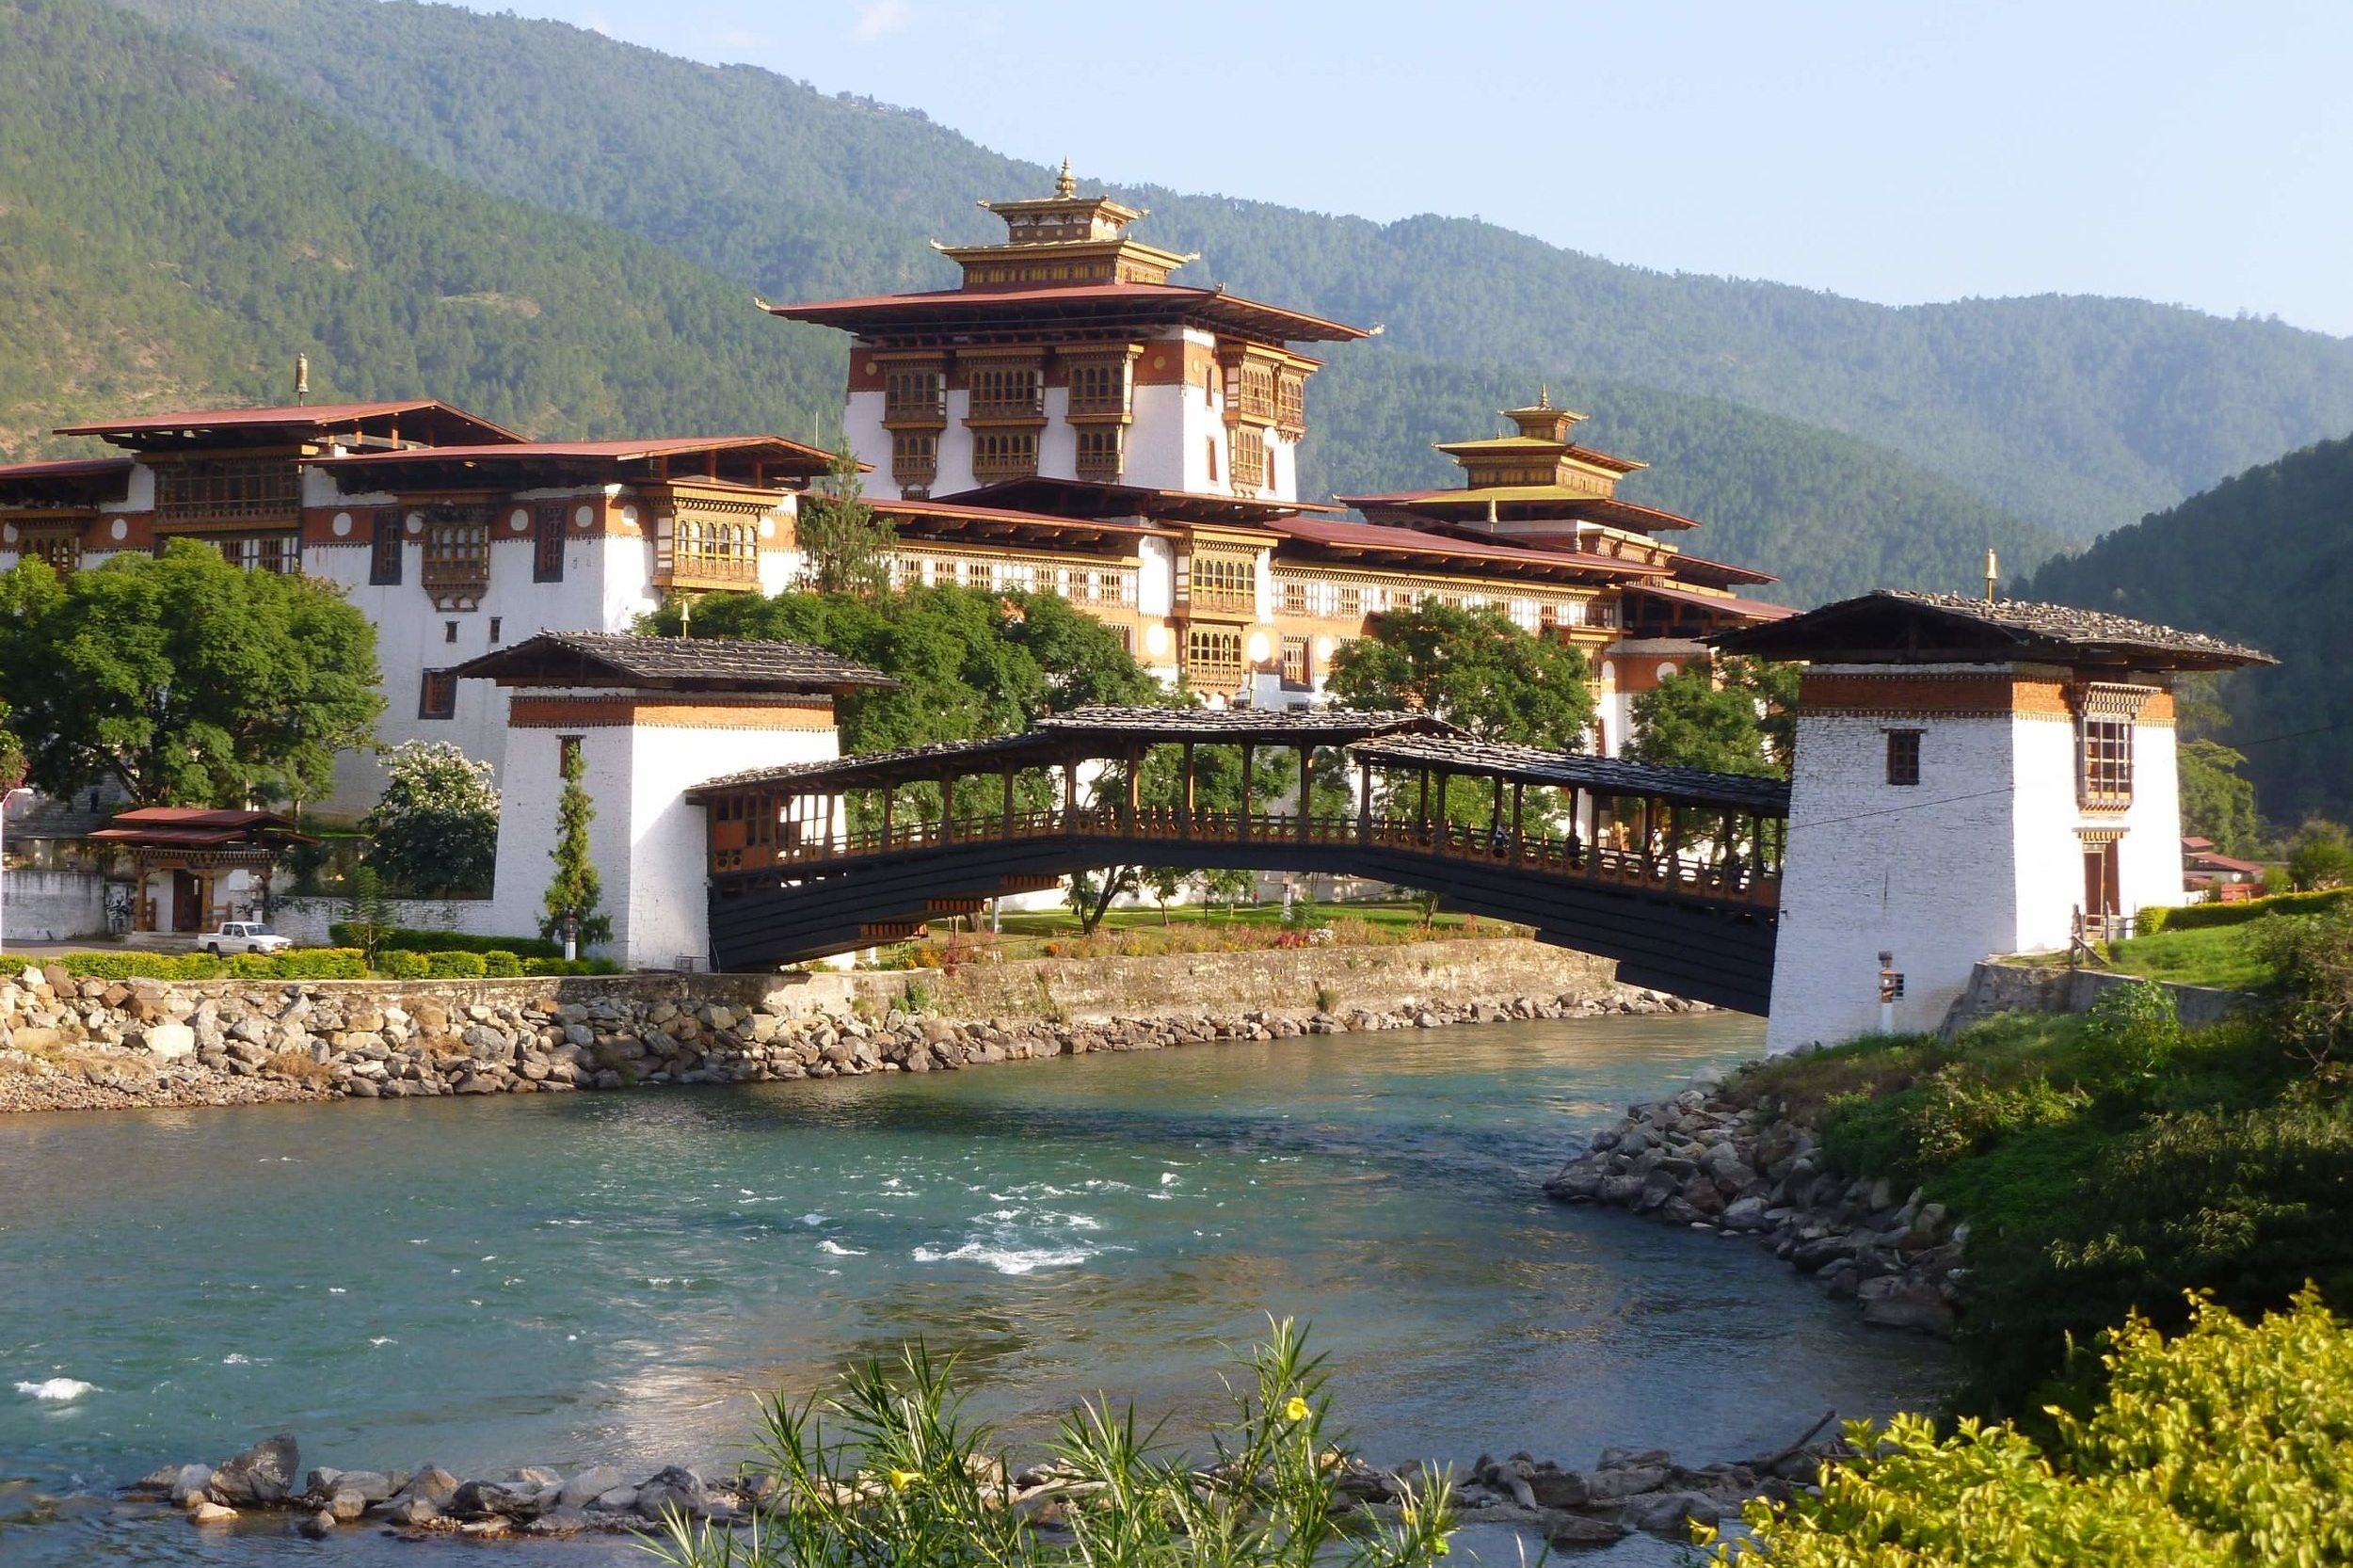 Punakha Dzong - The second oldest and second largest Dzong in Bhutan, Punakha holds the sacred artefacts of the Kagyu lineage, plus relics of Terton Pema Lingpa.